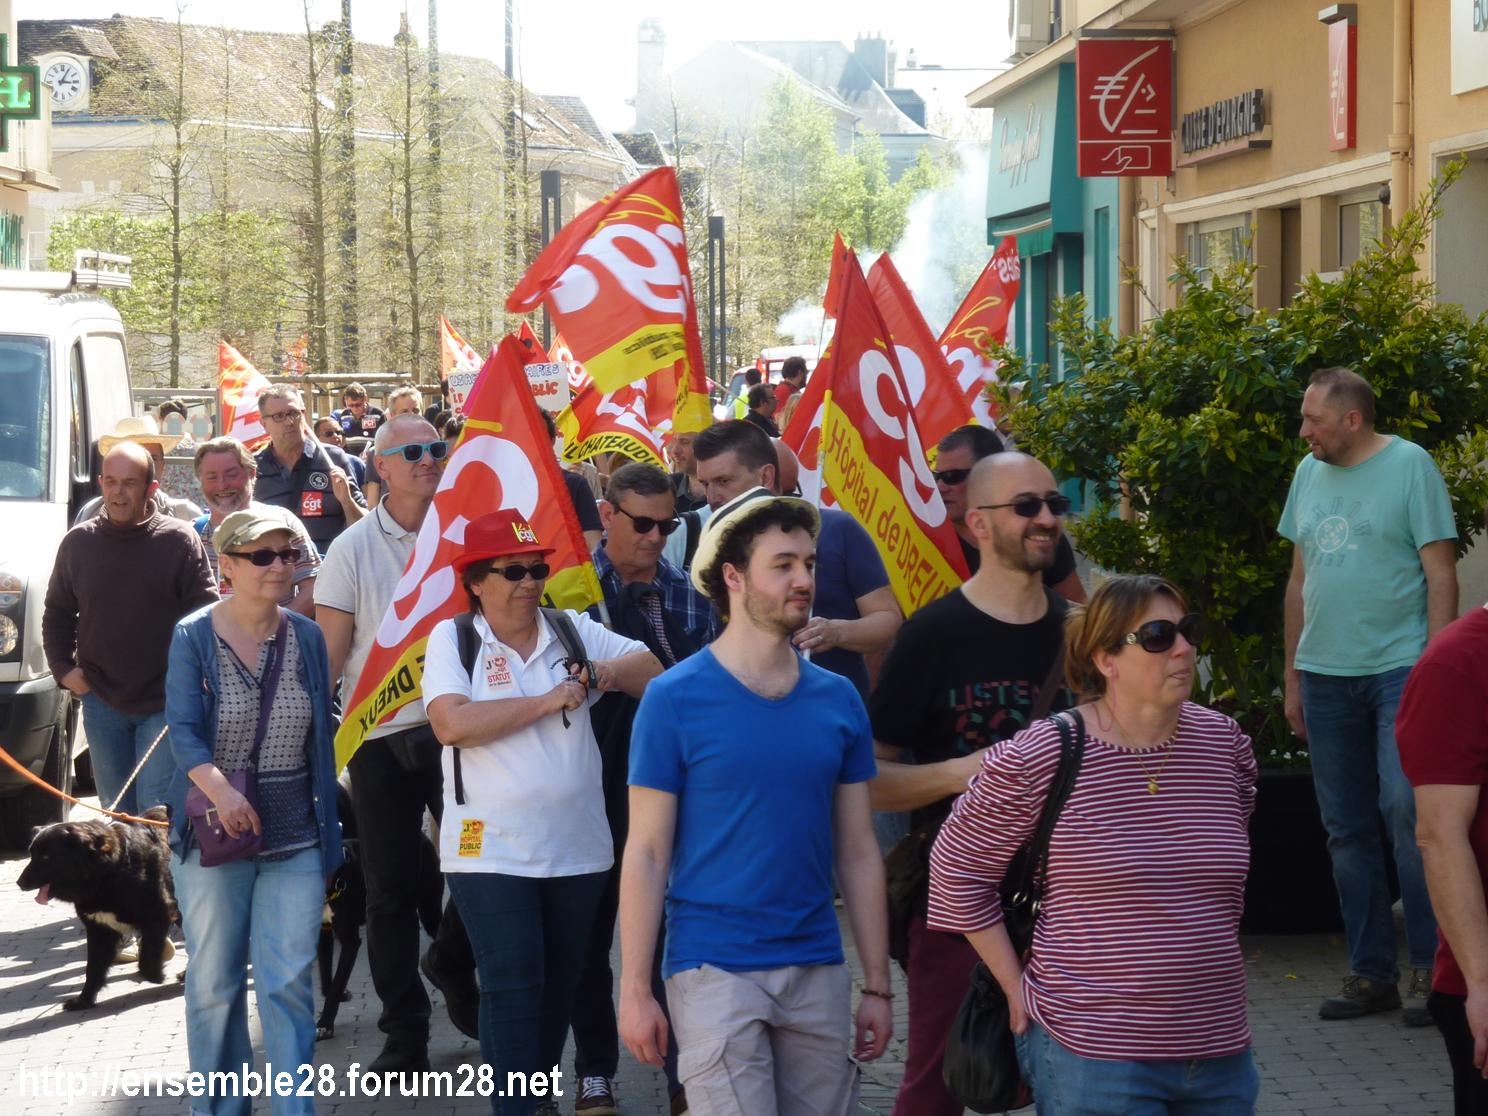 19-04-2018 Chartres Manifestation Interprofessionnelle CGT Solidaires SNES-FSU n°03